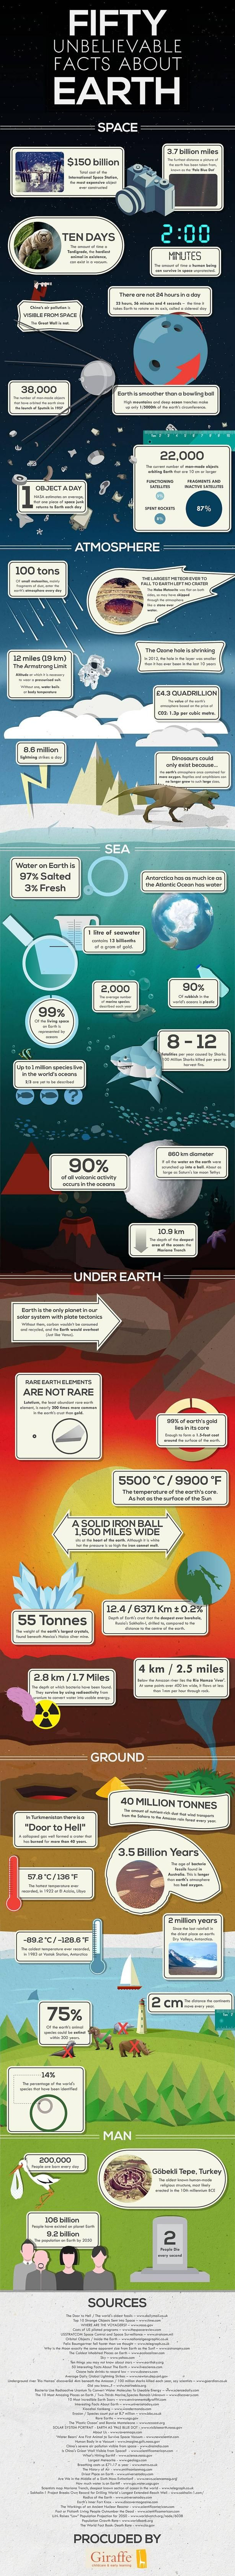 50 crazy facts about the world, in all its worldly glory.